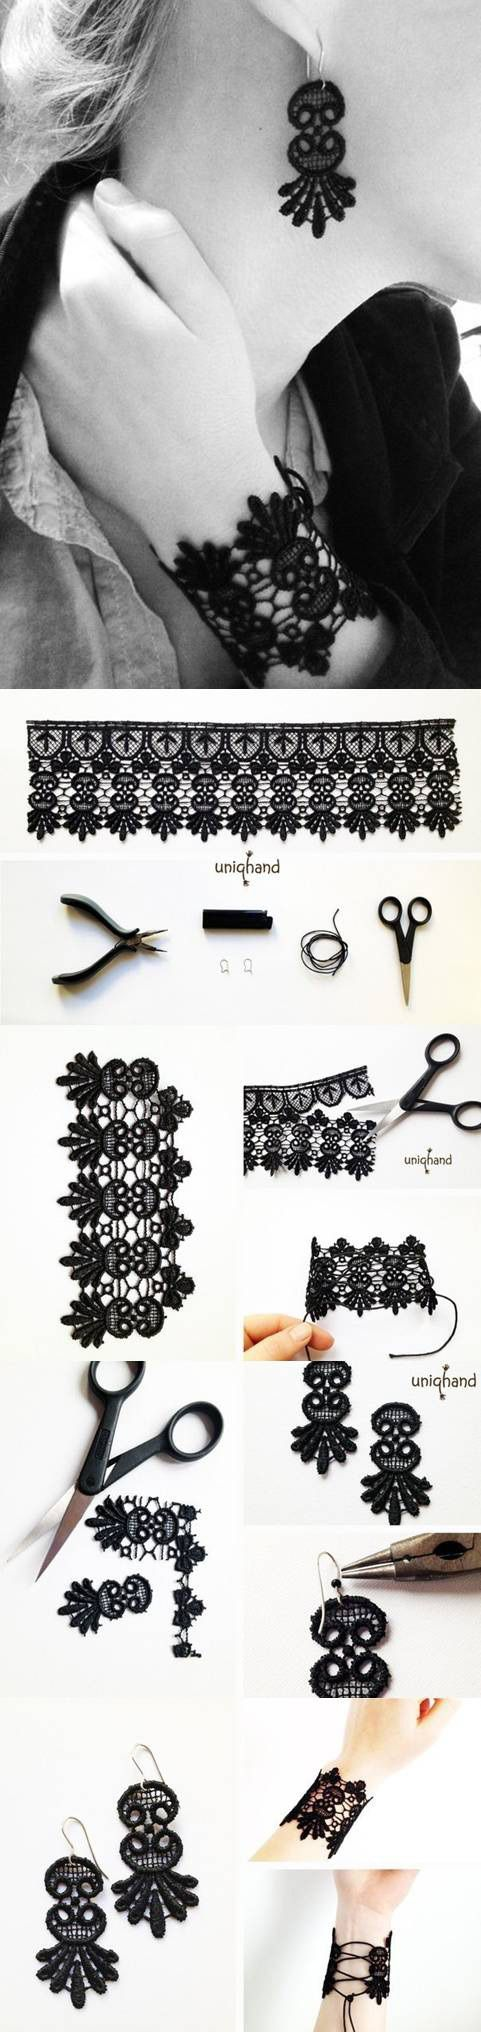 diy-lace-bracelet-and-earrings